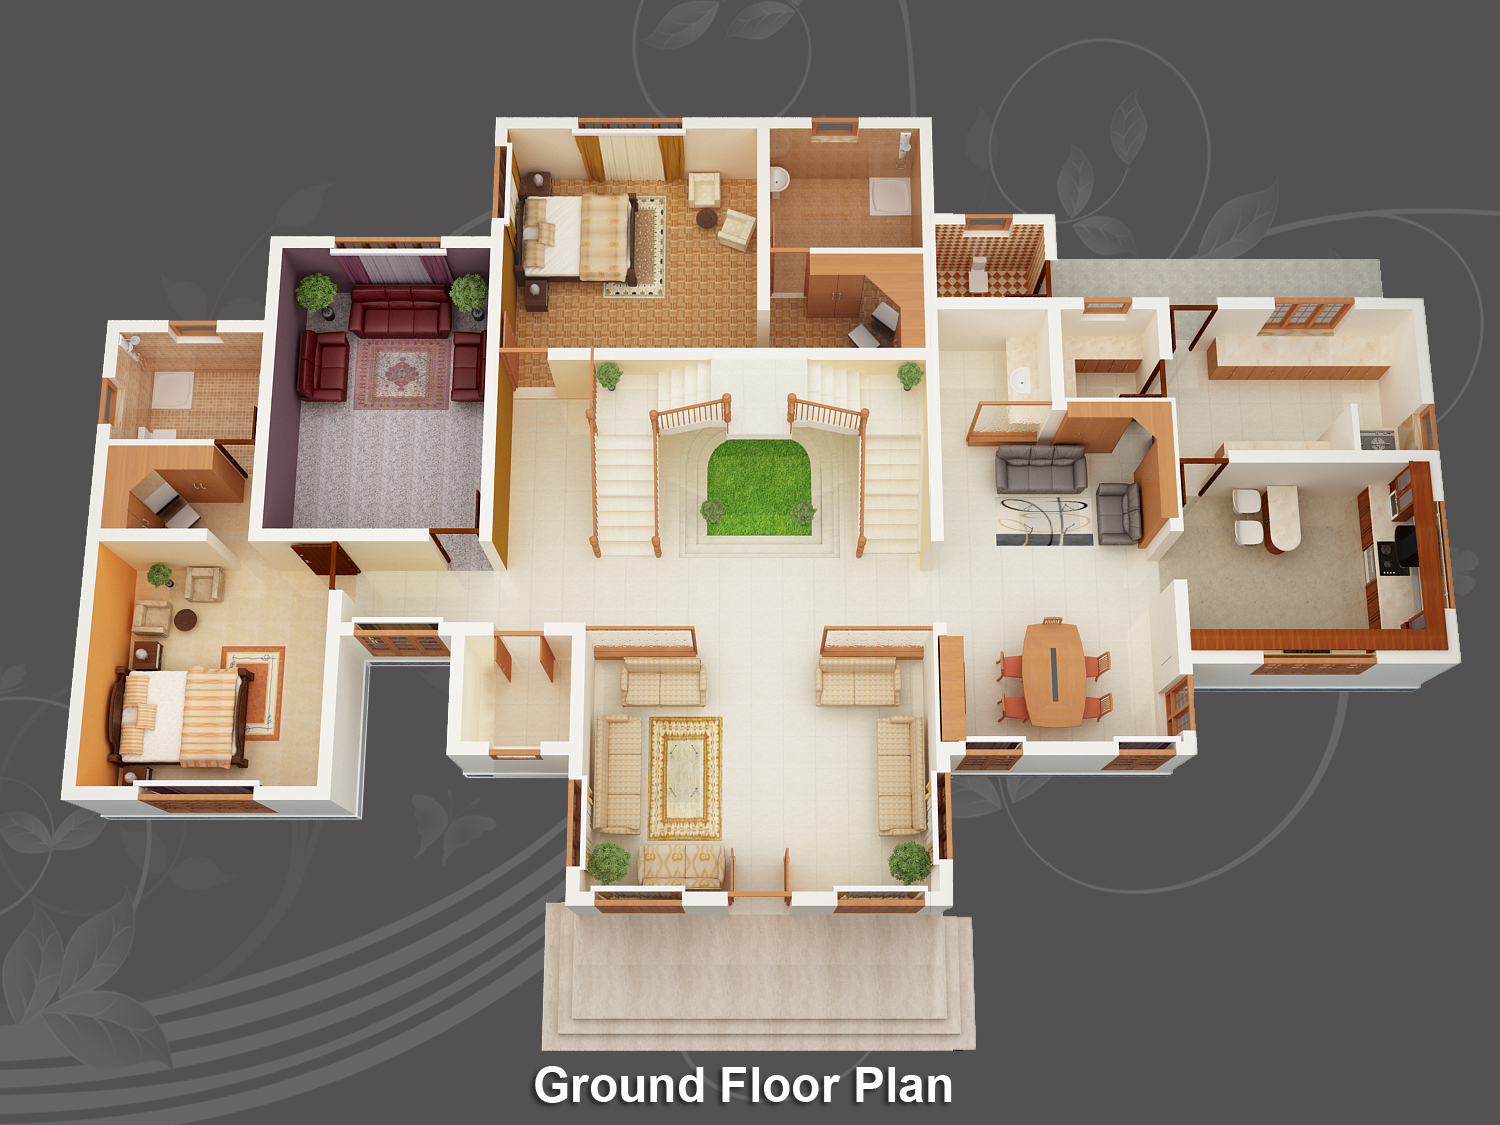 Evens construction pvt ltd 3d house plan 20 05 2011 for Blueprint small house plans